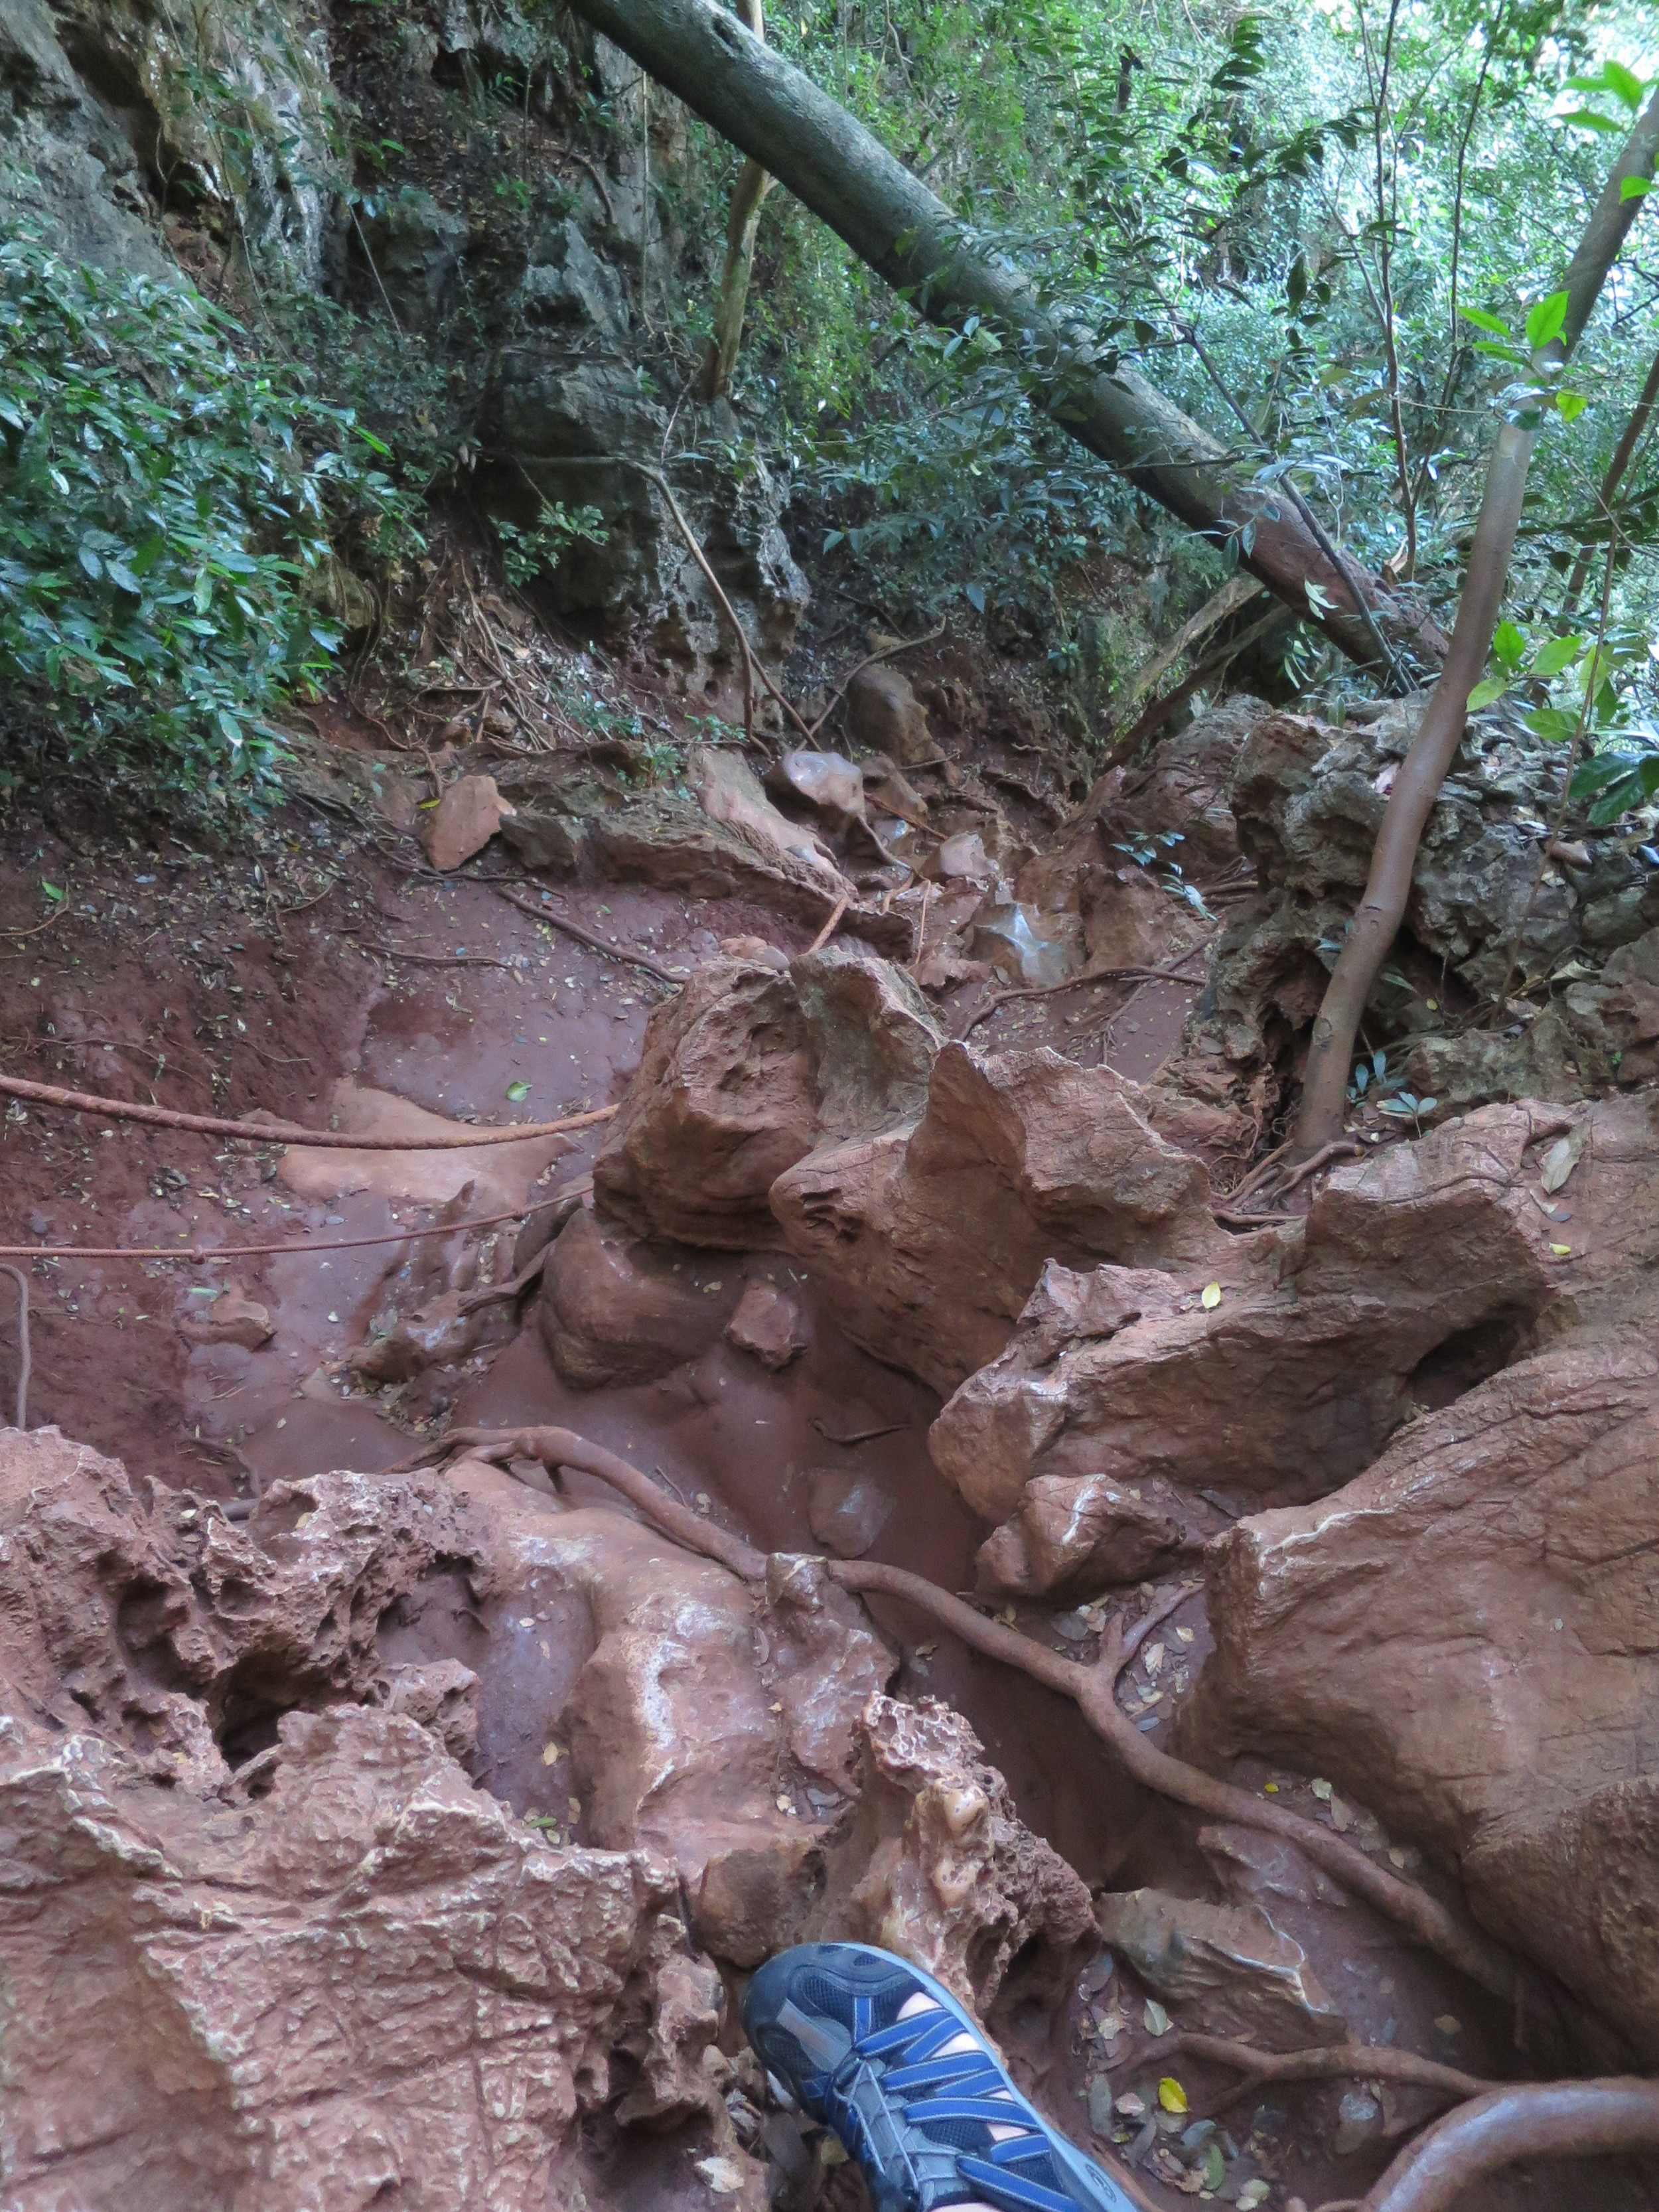 The trail to the viewpoint